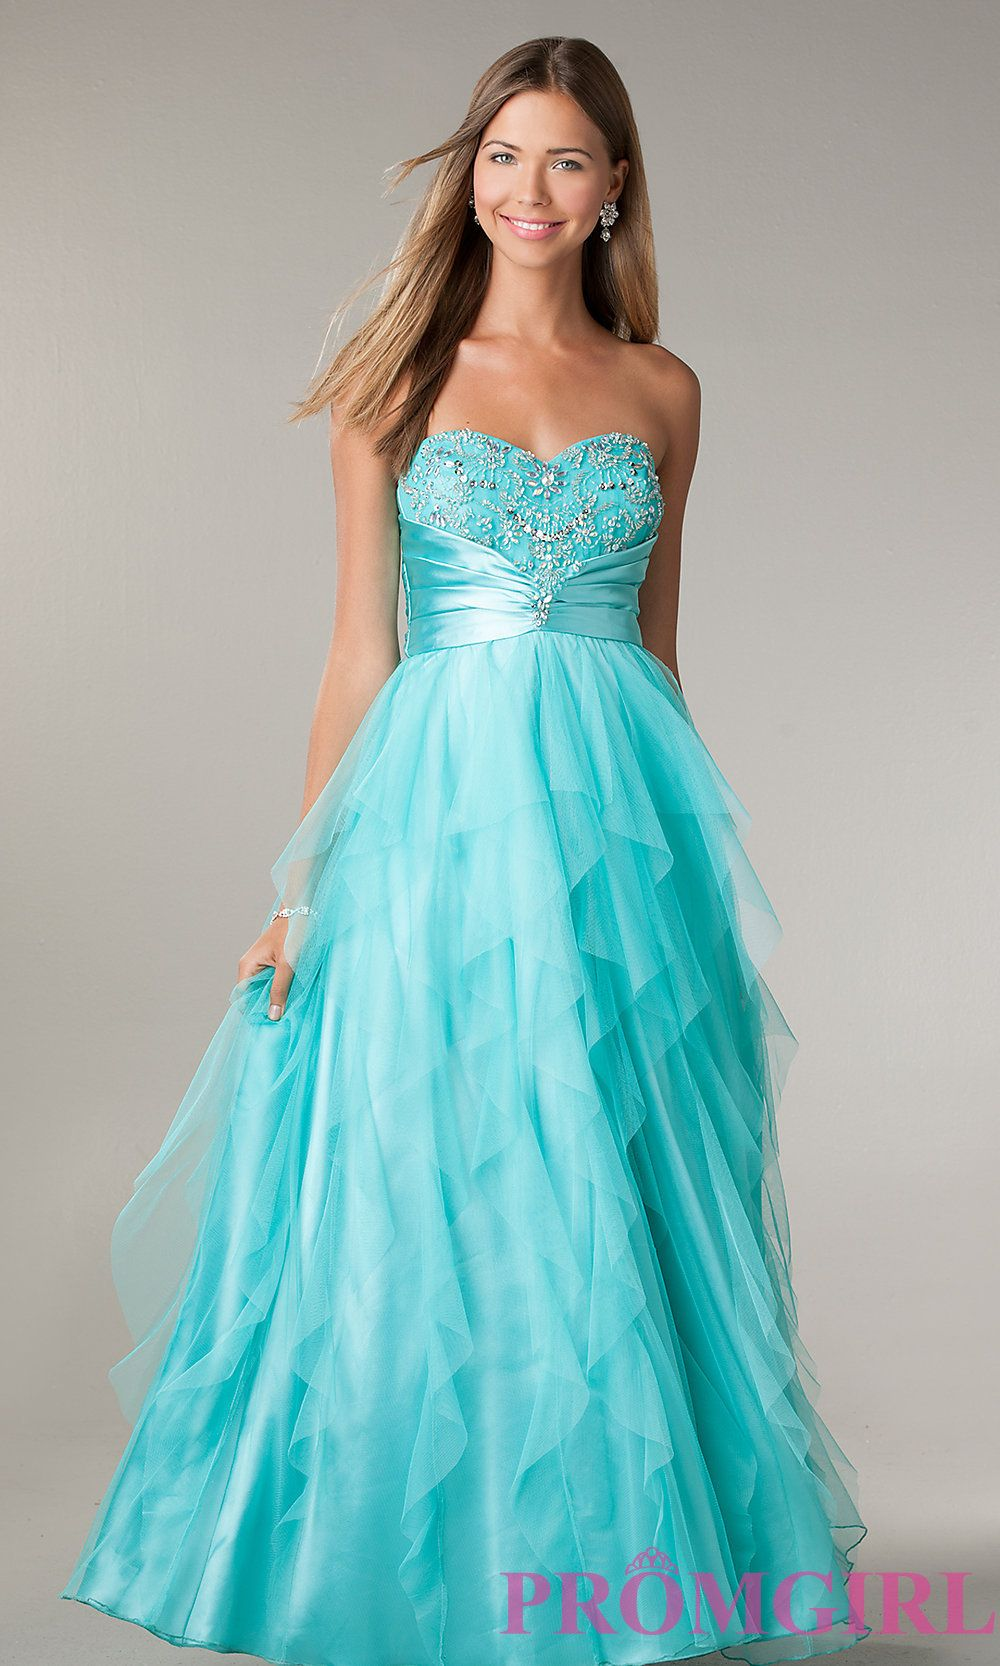 Long Ruffle Prom Dresses, LA Glo Strapless Prom Gowns- PromGirl ...